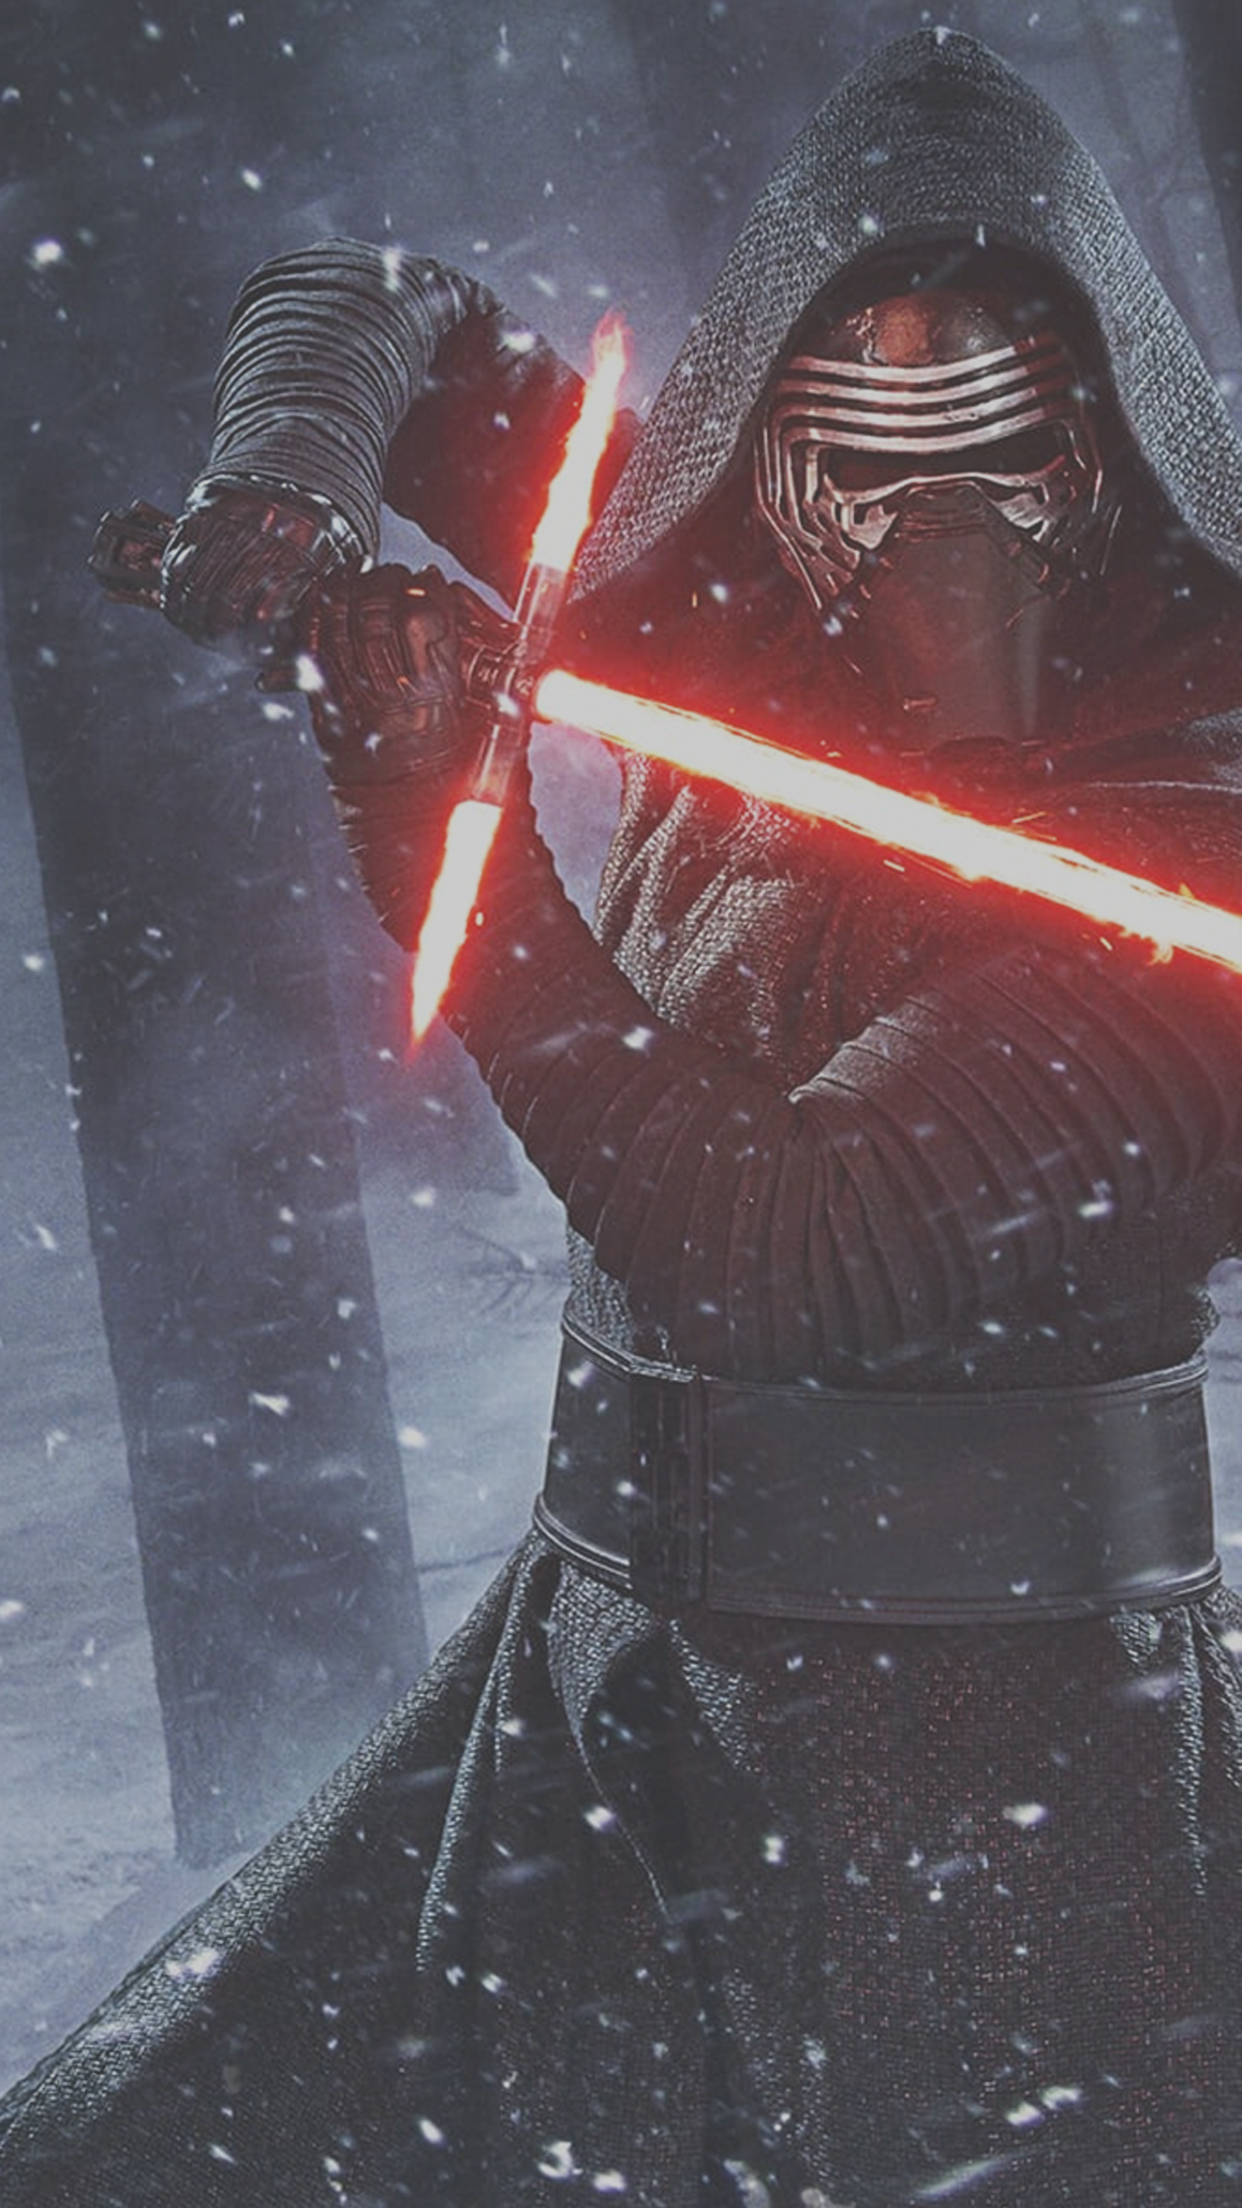 star wars the force awakens kylo ren lightsaber wallpaper